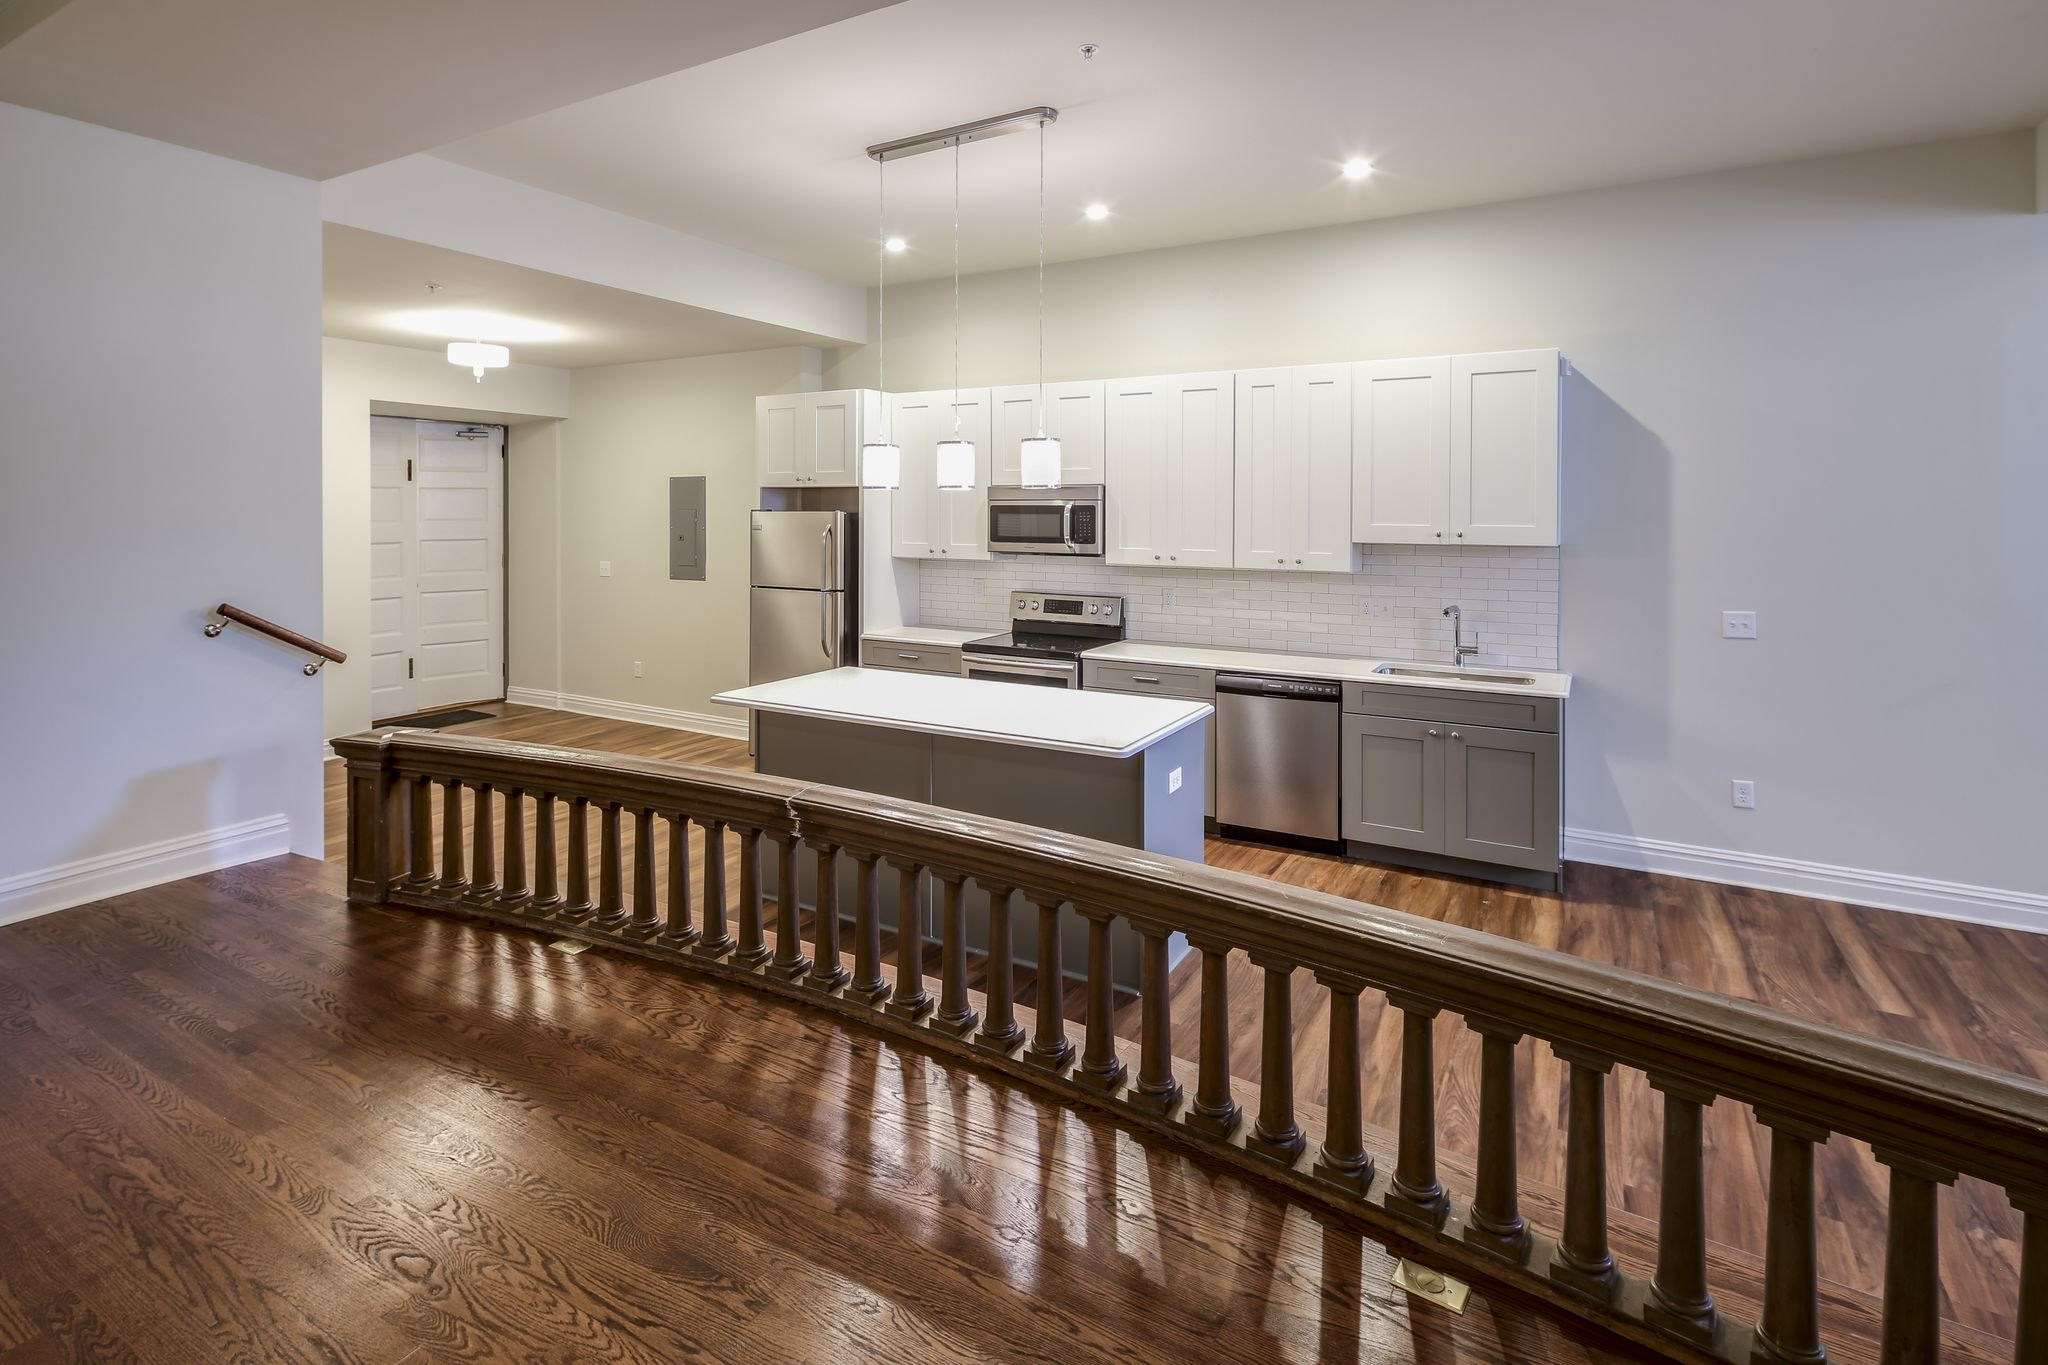 The Original Aspects Of The Church Were Maintained And Used Creative Kitchen And Bath Cabinets Provid Kitchens Direct Kitchen Cabinets In Bathroom Kitchen